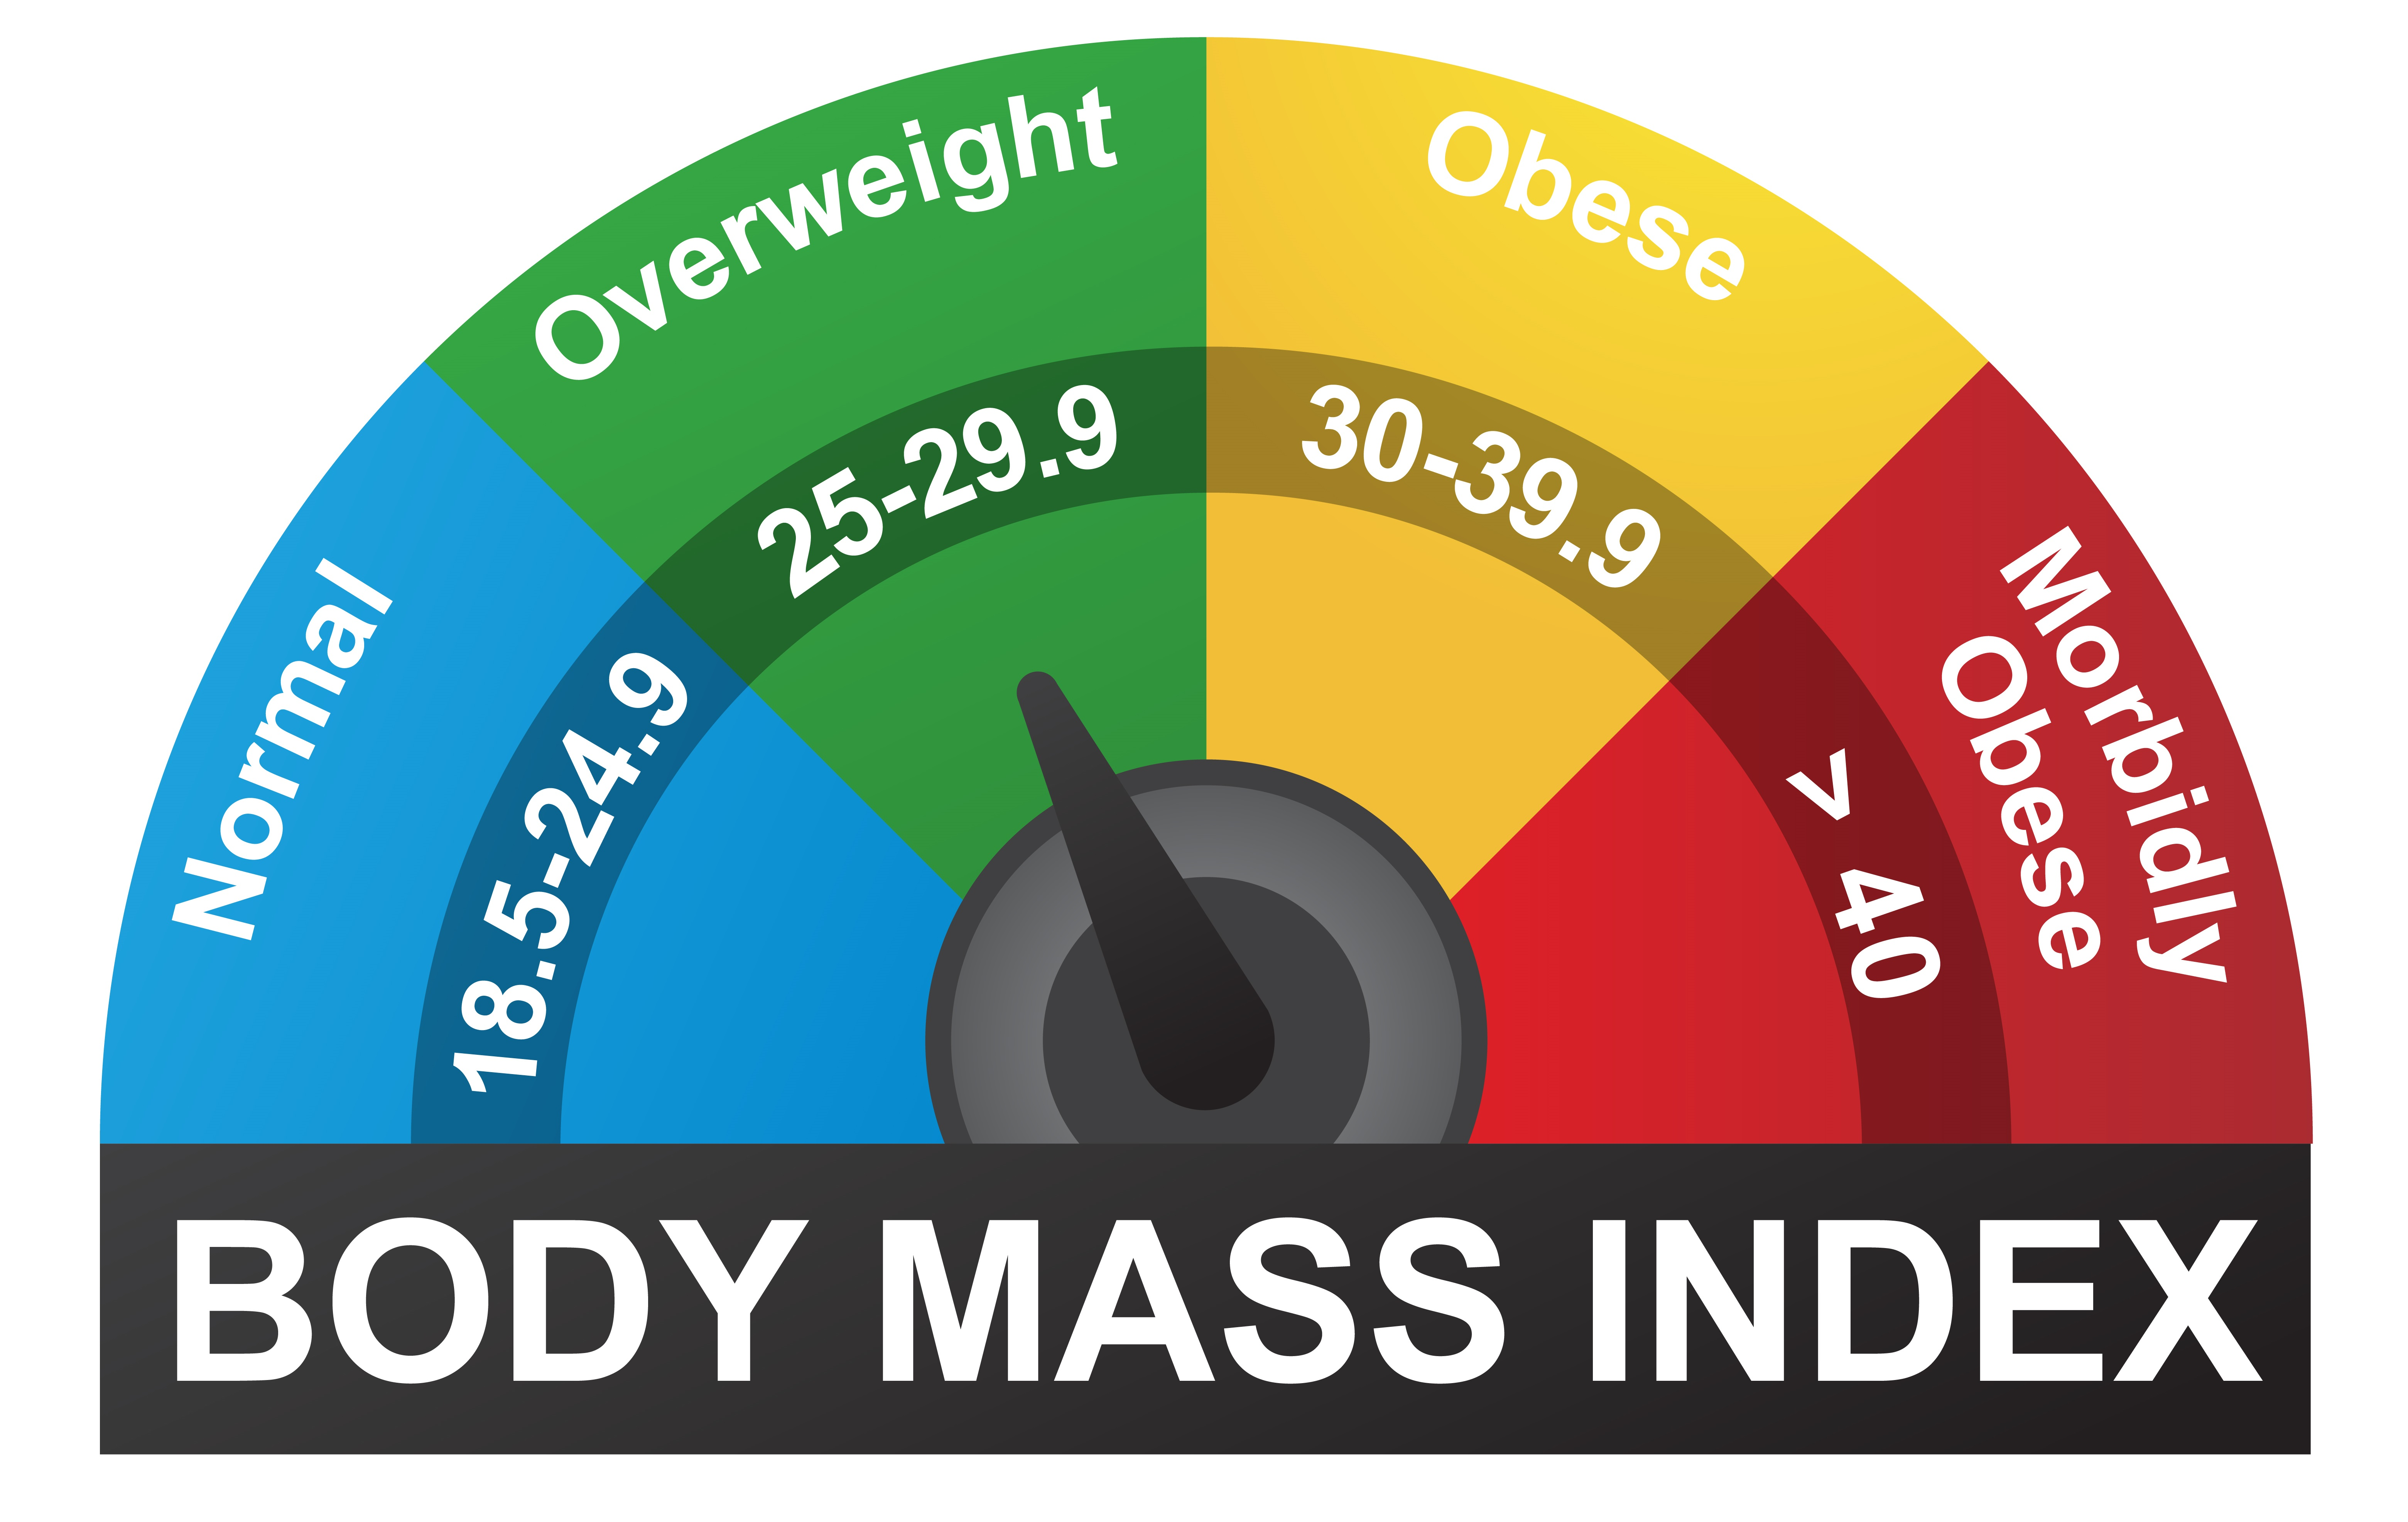 The BMI uses a rating scale to determine obesity levels